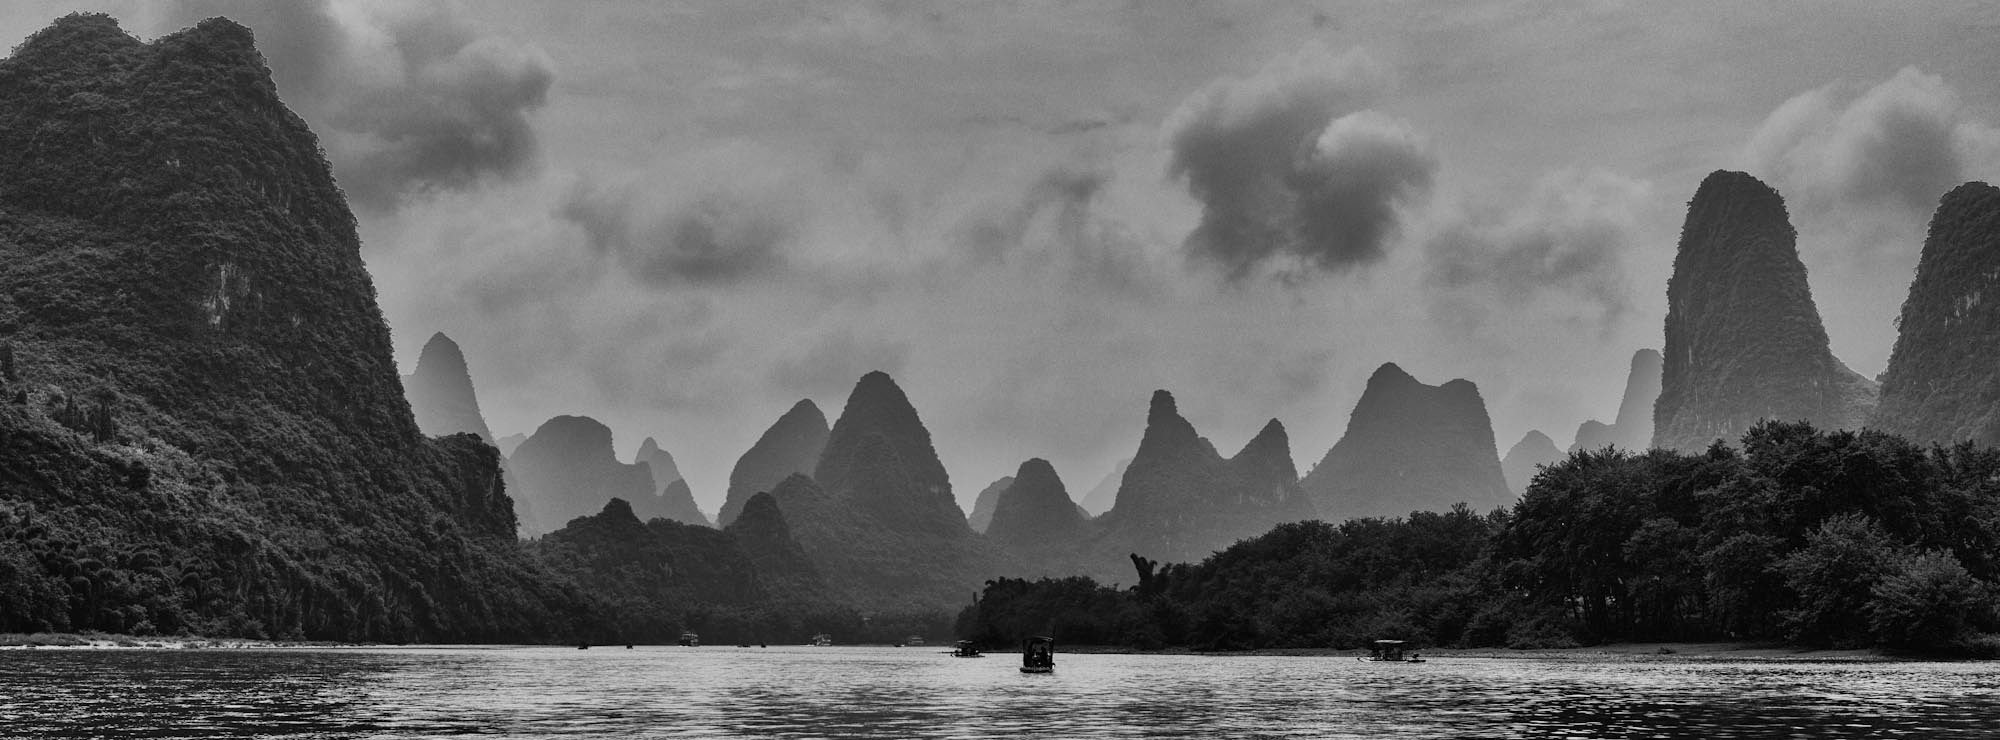 Photograph Li River, XingPing China by Stephen Patterson on 500px